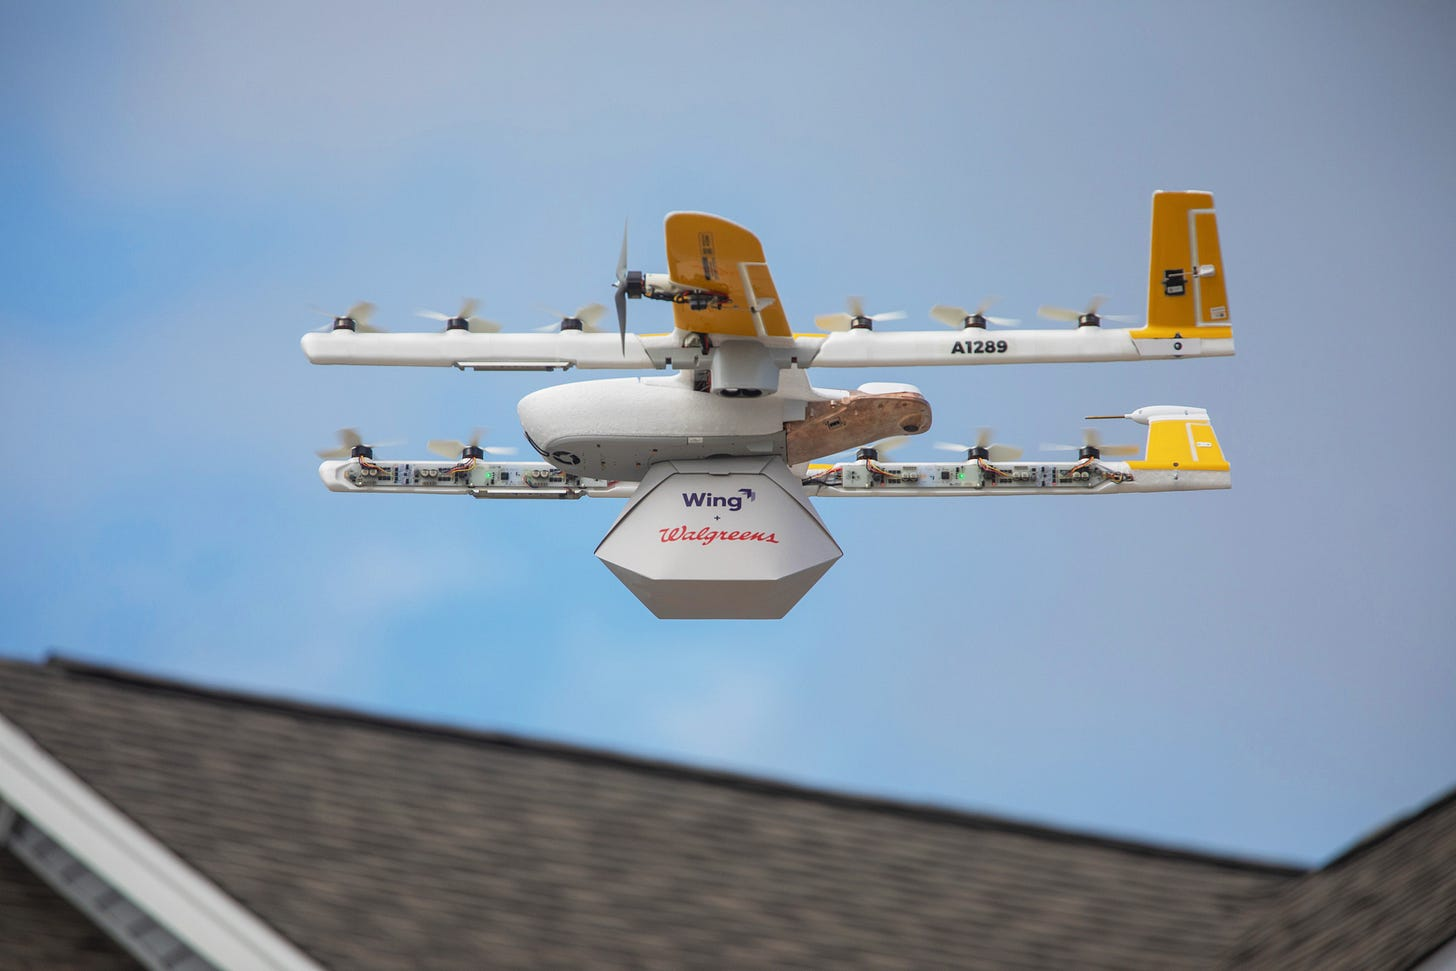 Wing drone delivery 3